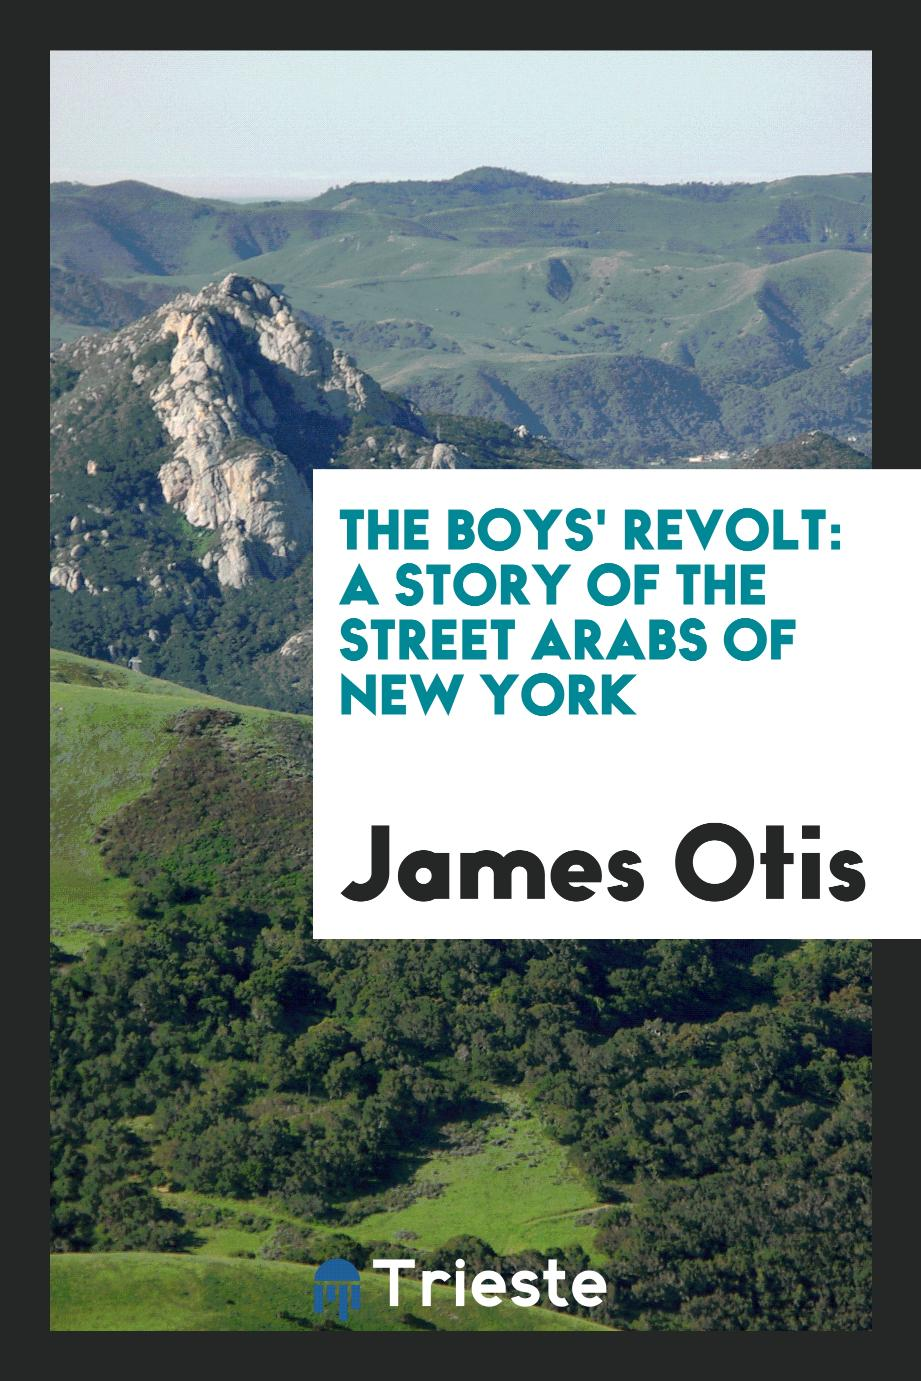 The Boys' Revolt: A Story of the Street Arabs of New York